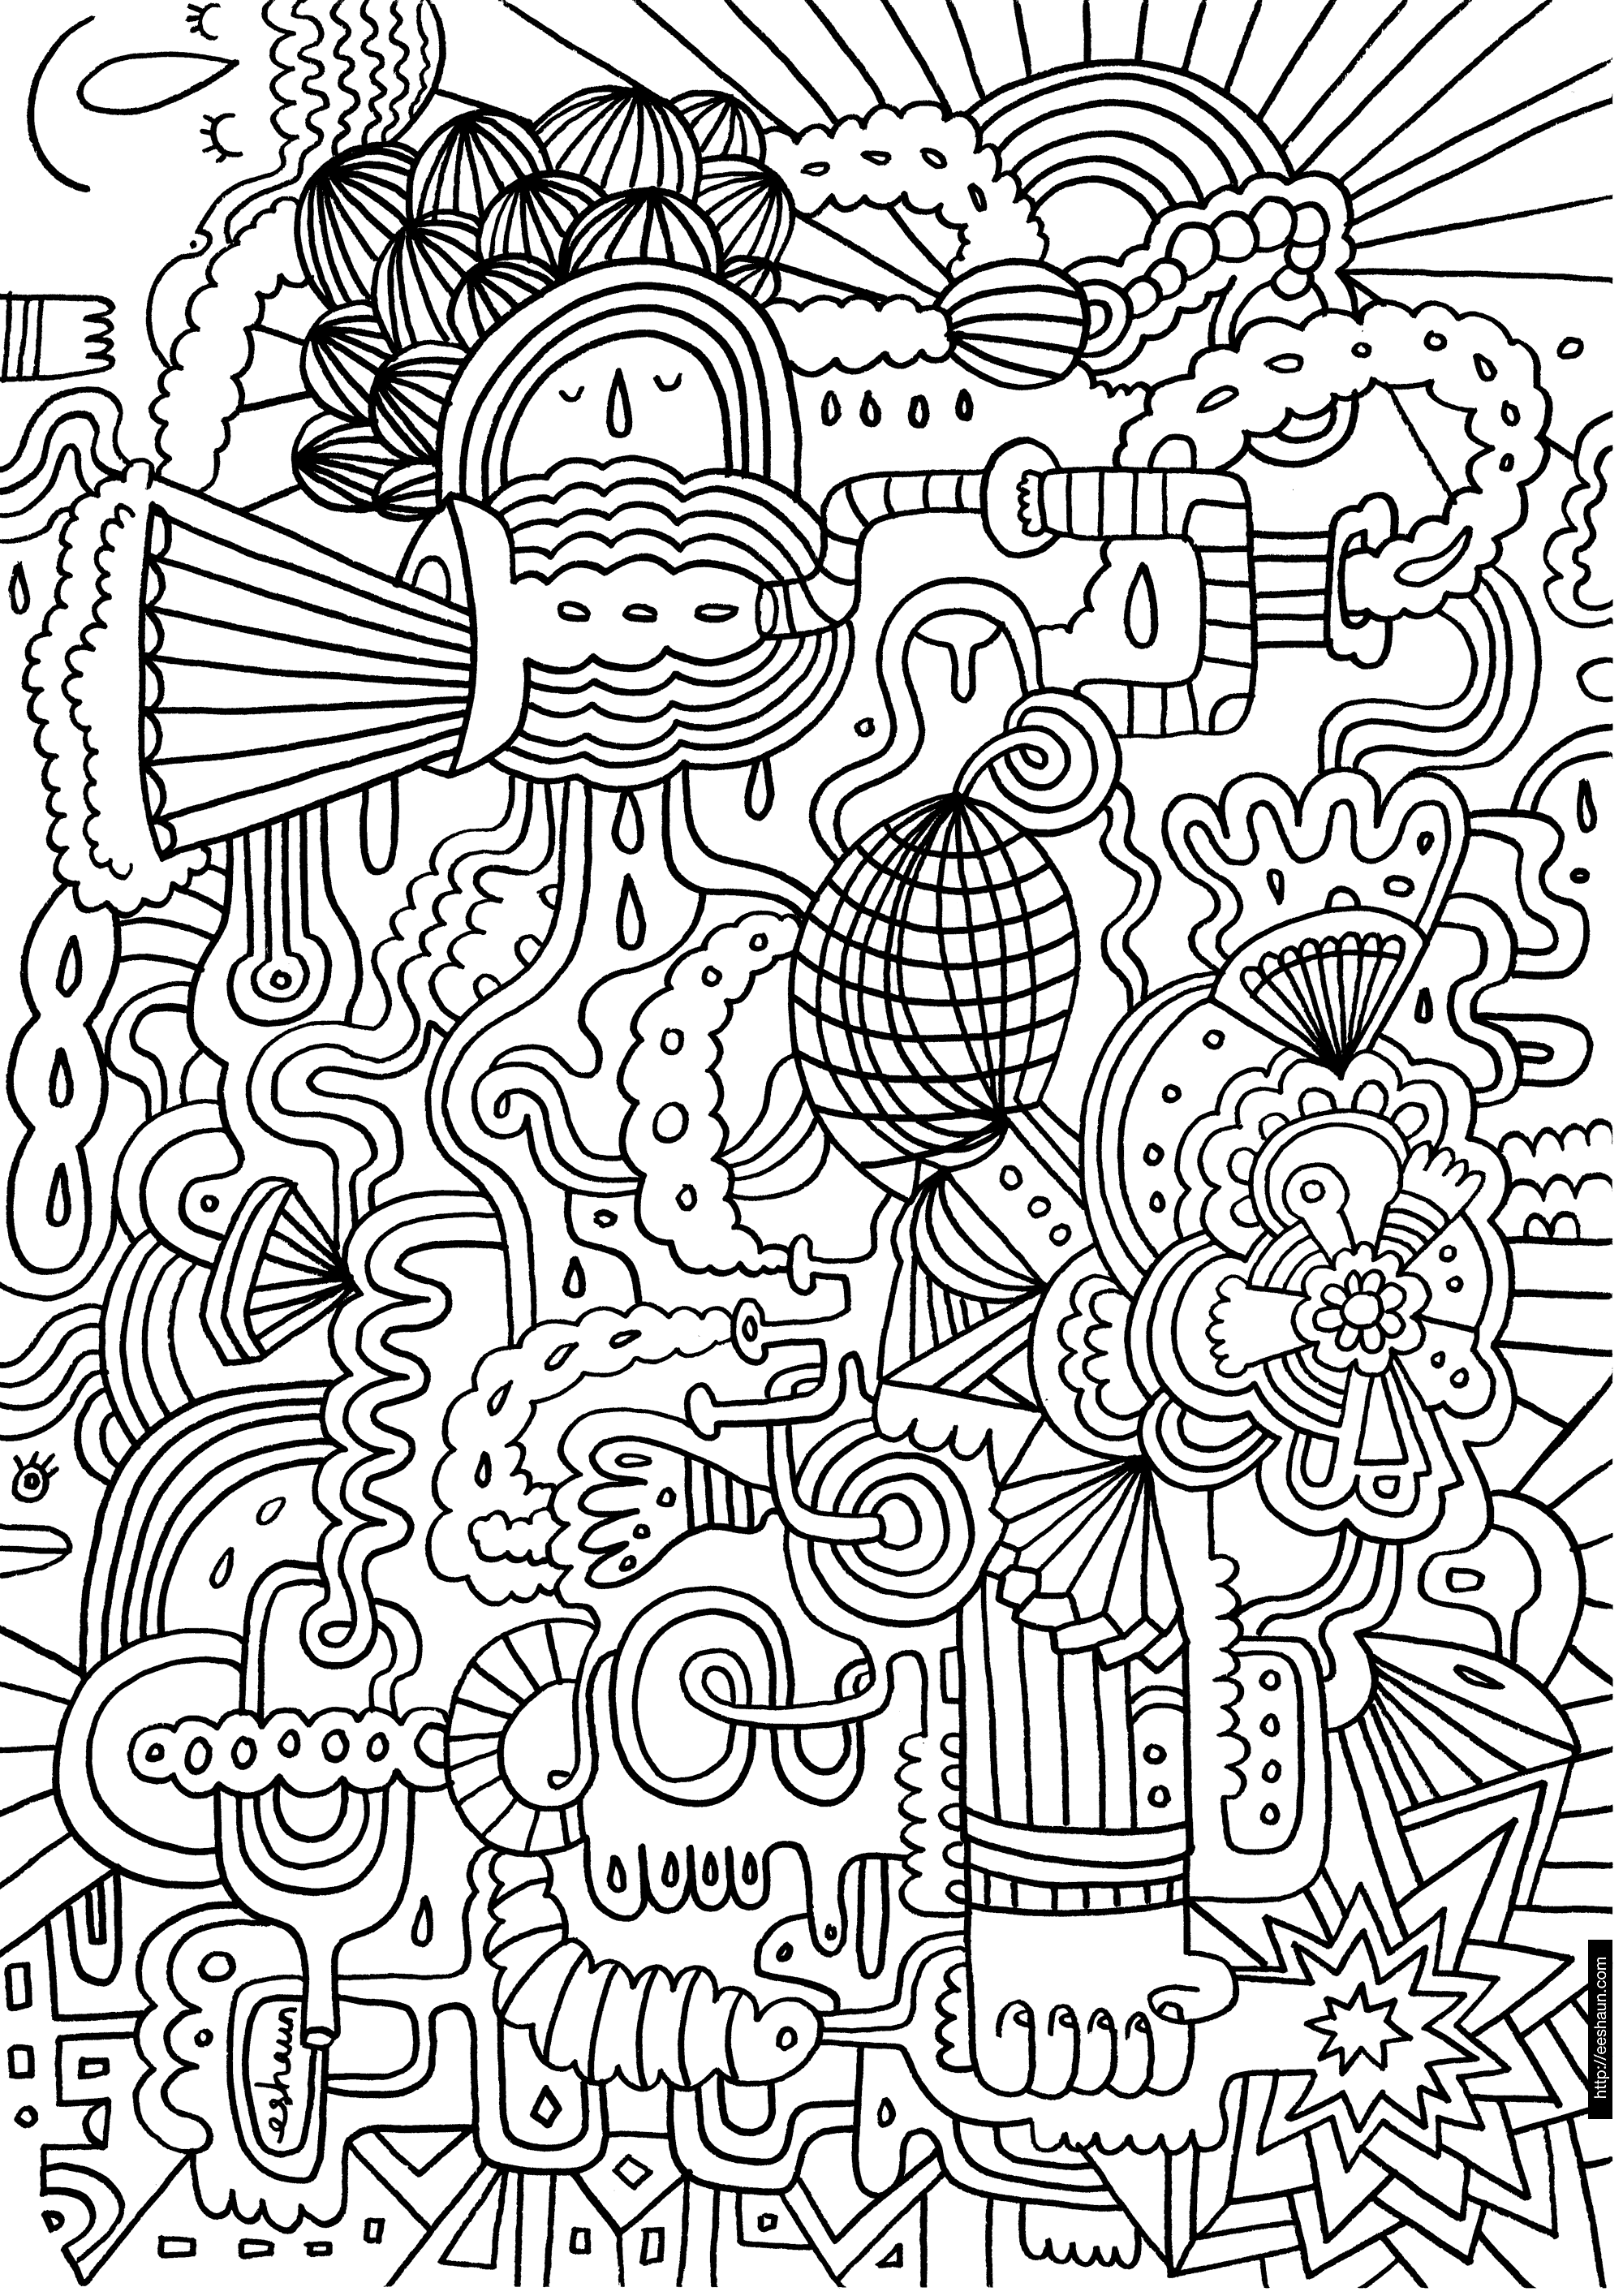 really difficult coloring pages – psubarstool.com